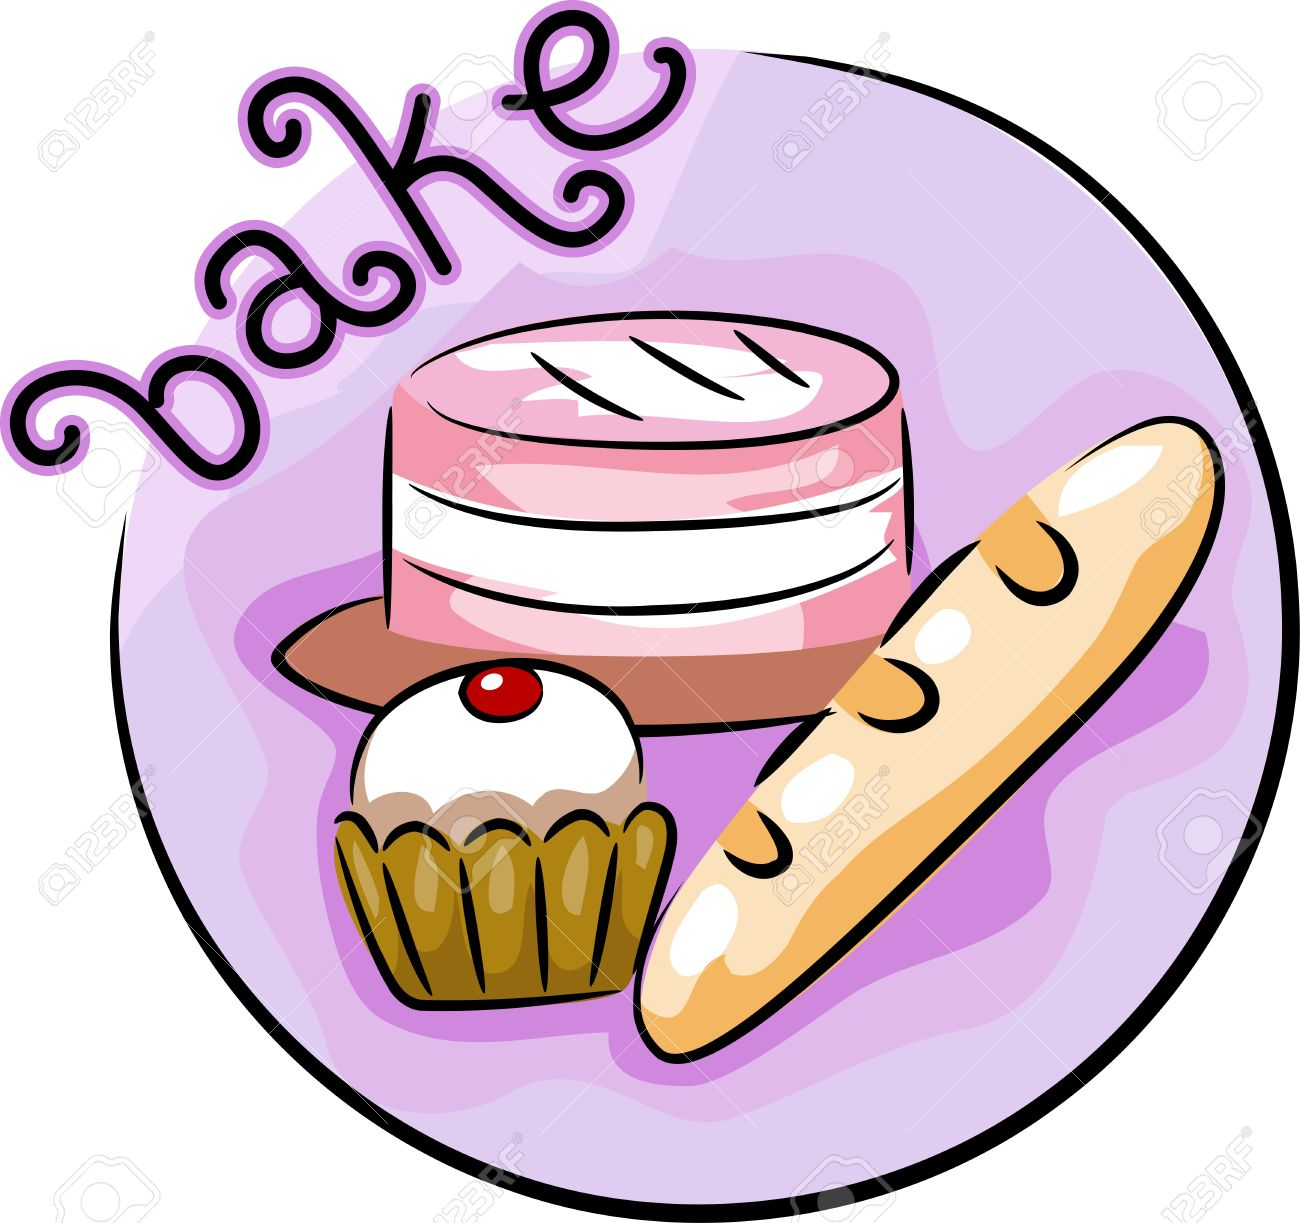 vector freeuse stock Baking clipart. Clip art free panda.